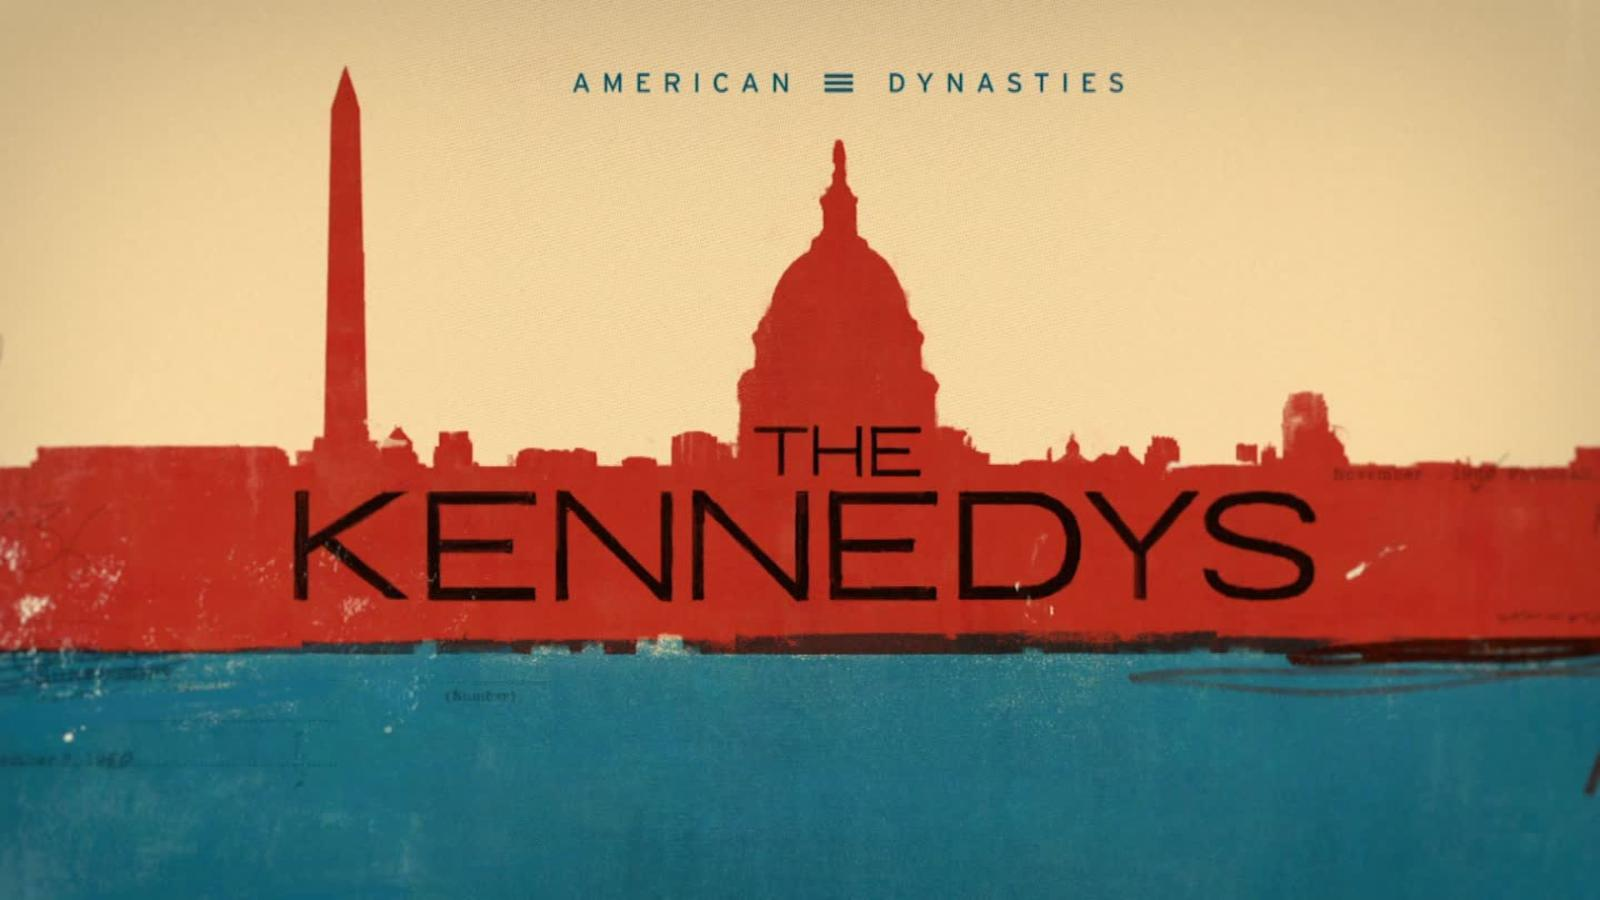 180306122952-american-dynasties-the-kennedys-trailer-00025508-full-169.jpg